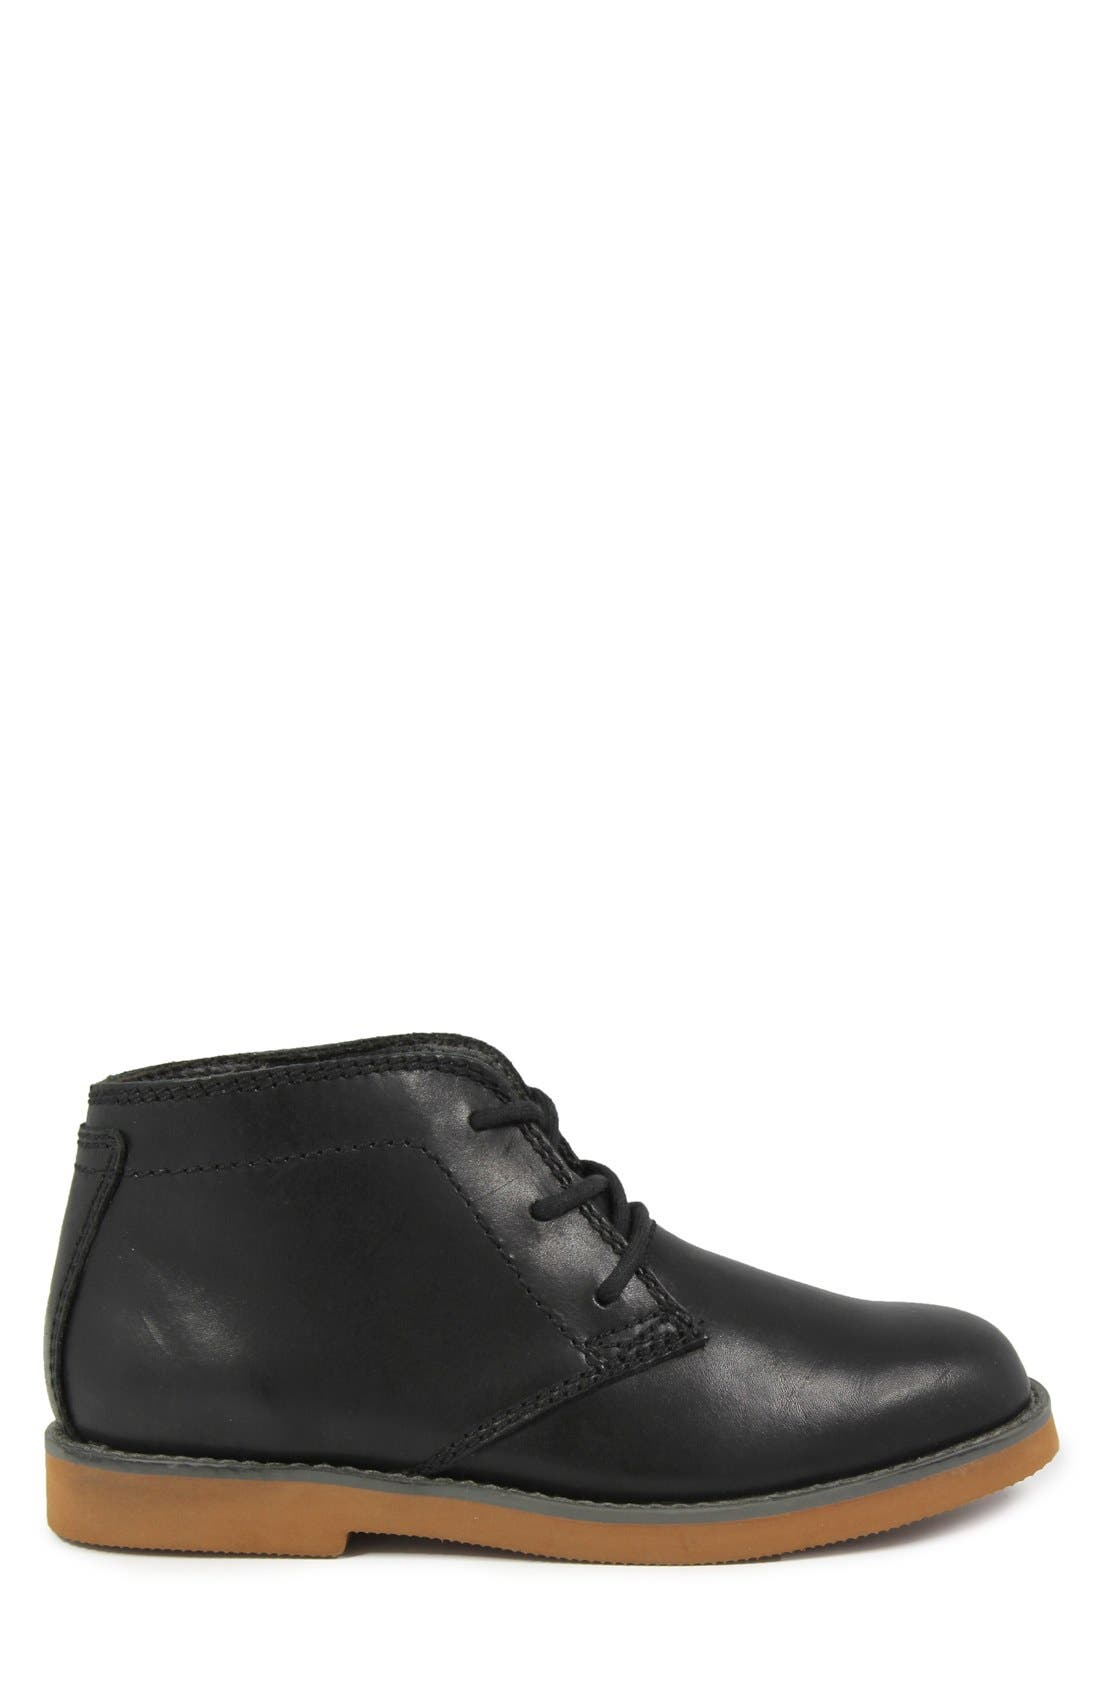 'Bucktown' Chukka Boot,                             Alternate thumbnail 3, color,                             Black Smooth With Brick Sole